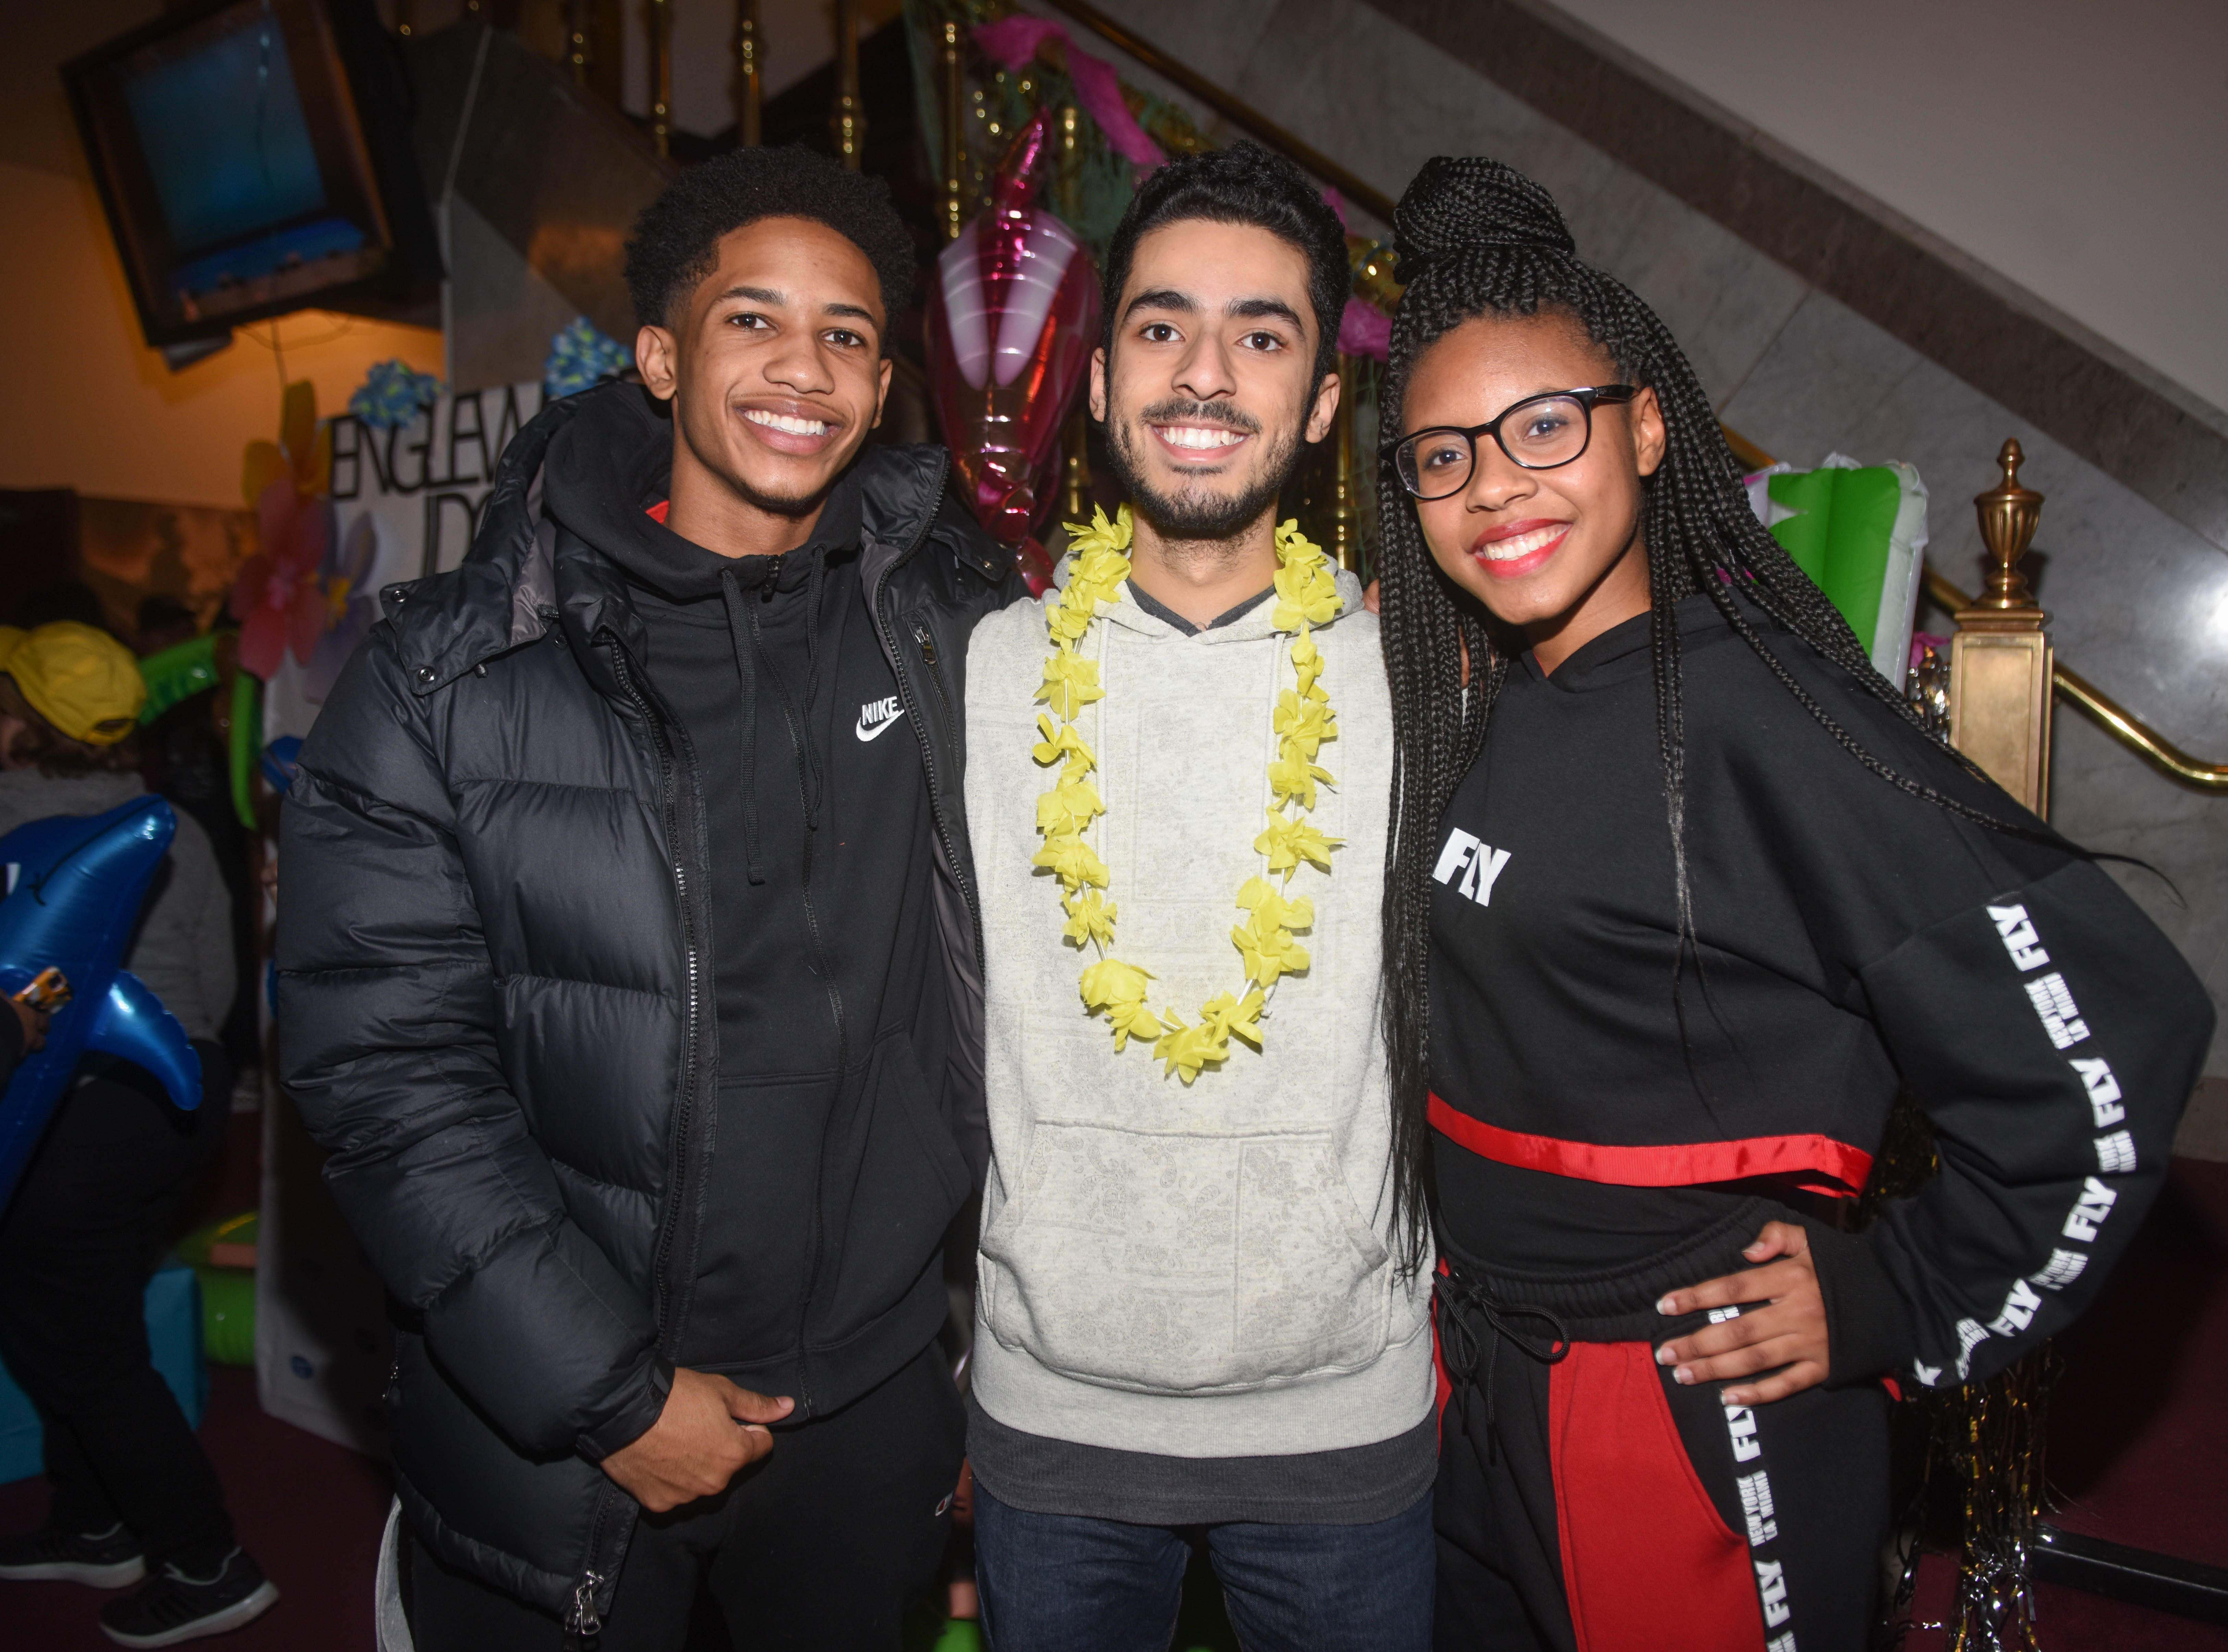 Elijah, Evan and Tyler. The 2019 Englewood Idol was held at bergenPAC theater. The singing competition is open to any high school student who currently lives or goes to school in Englewood, NJ. This years winner was Genesis Capellan. 01/11/2019